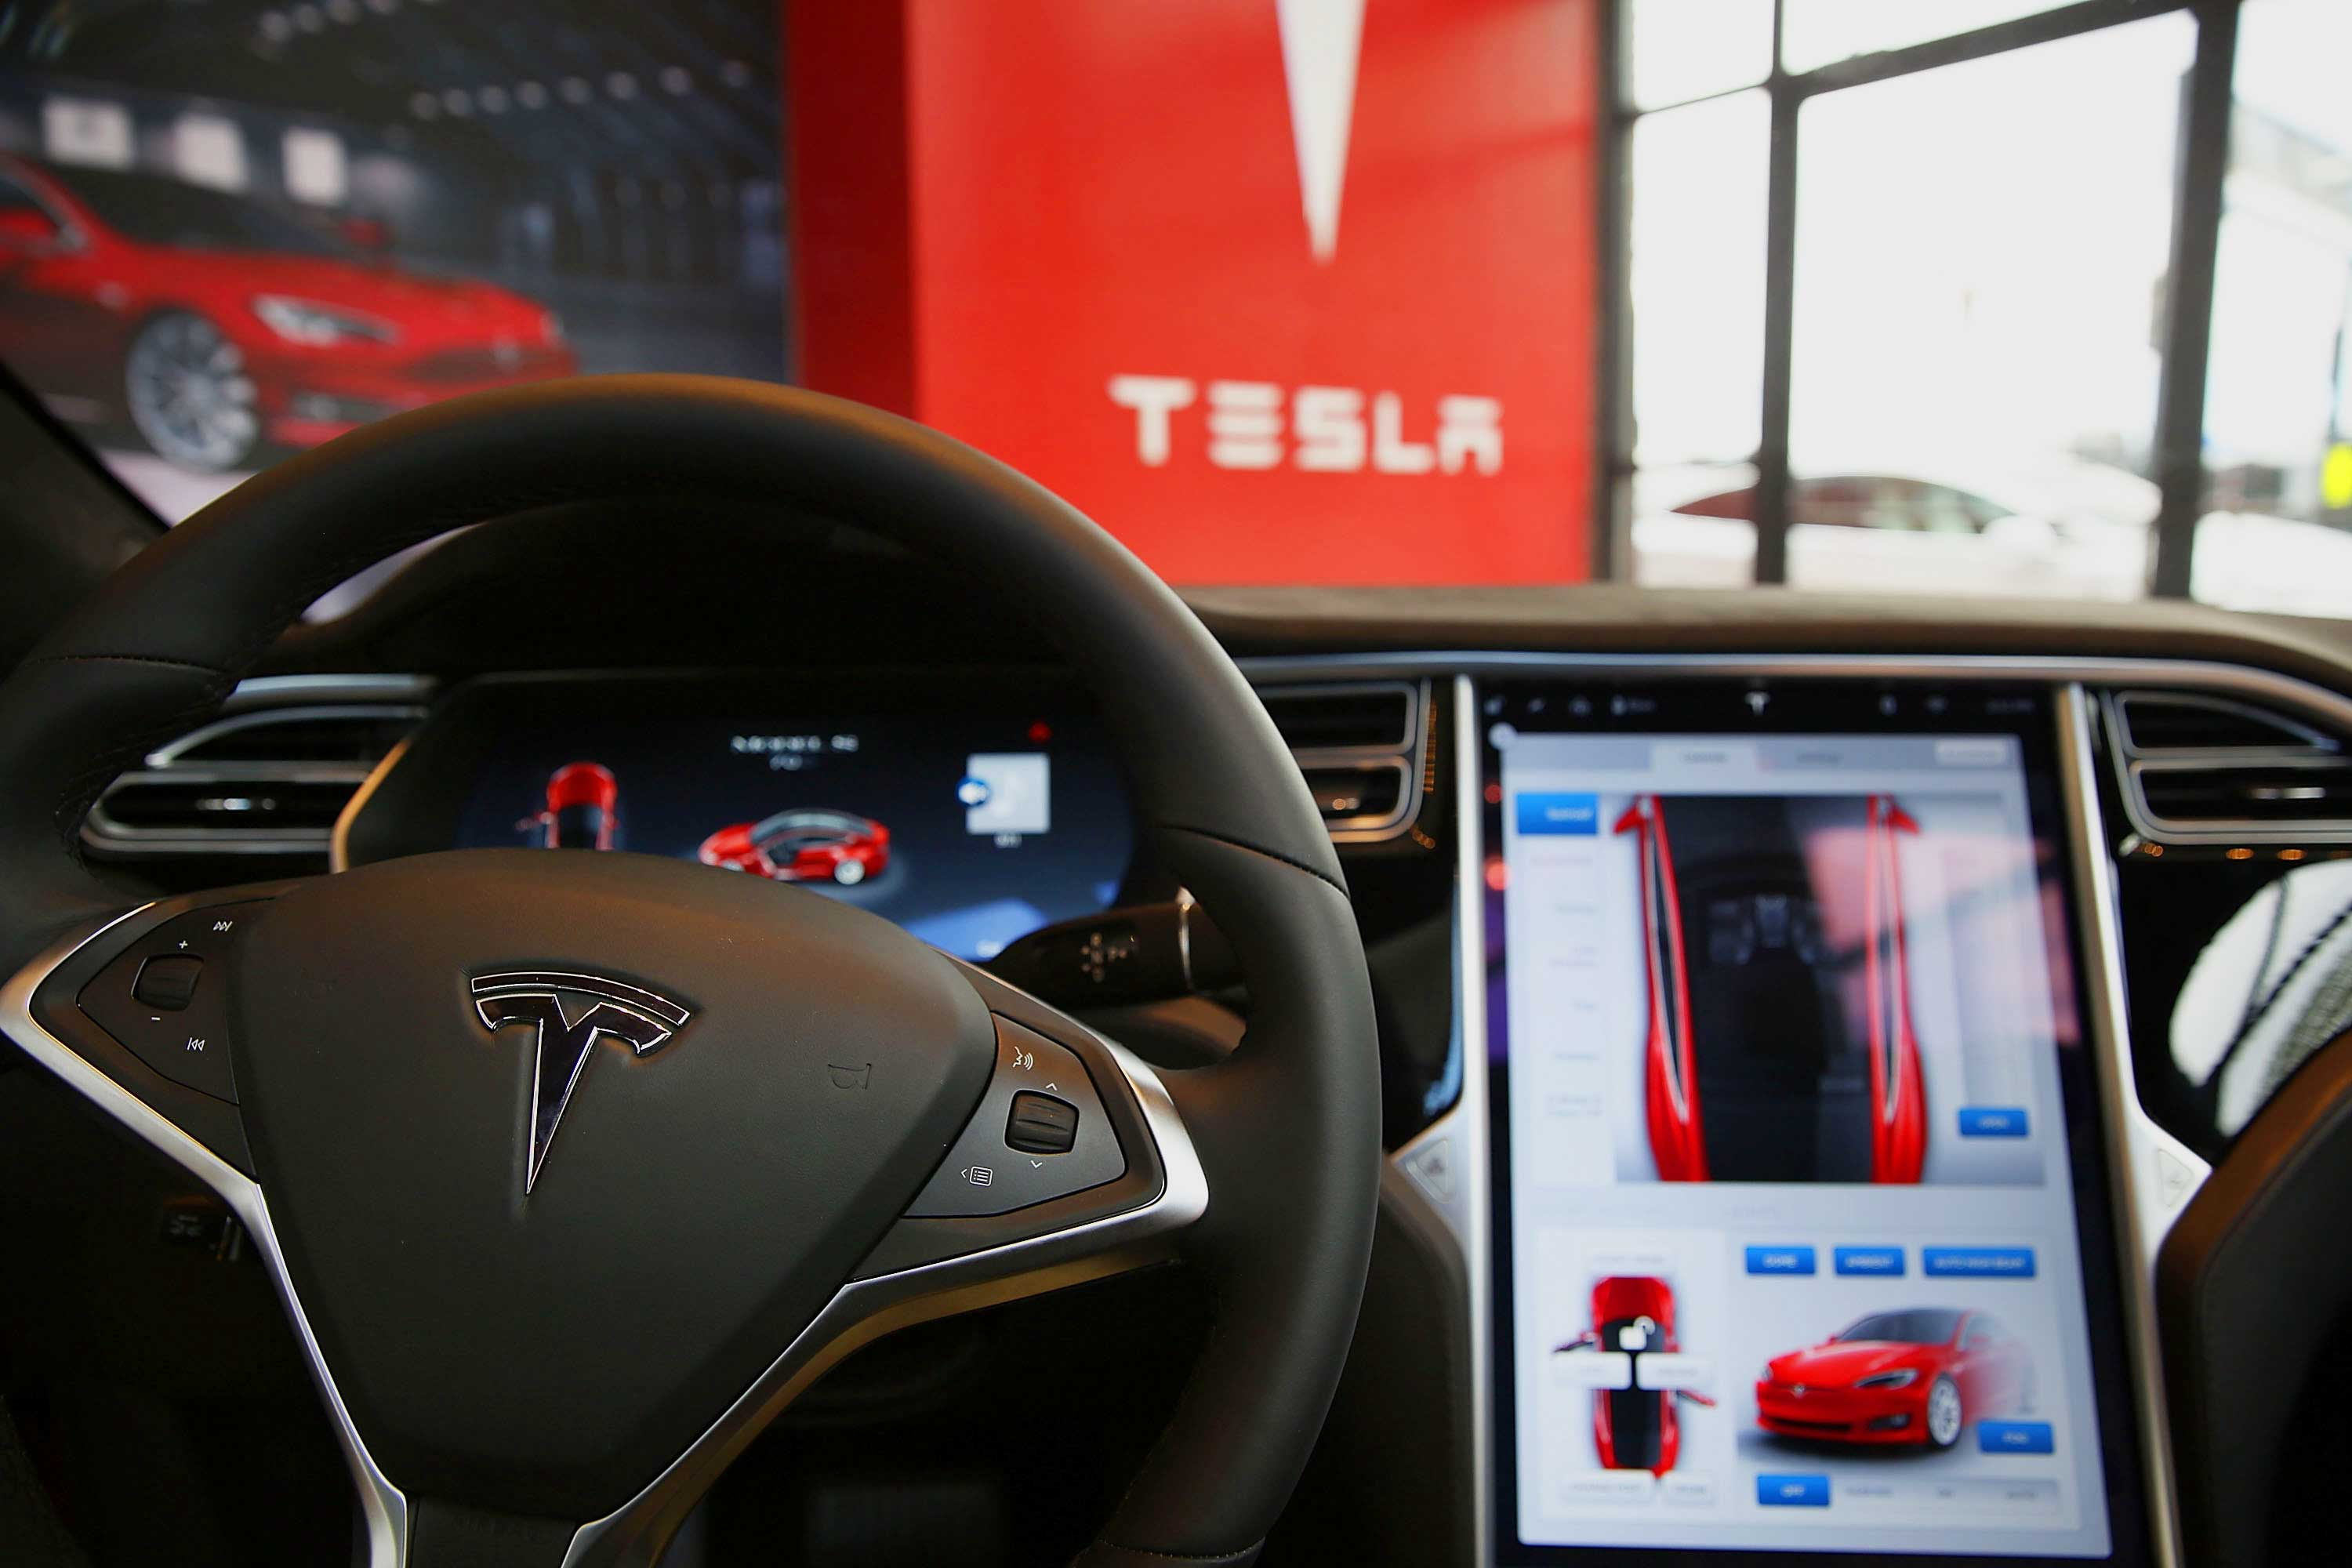 Tesla Jailbreaking: How to Combat Software Updates That Are Removing Car Features